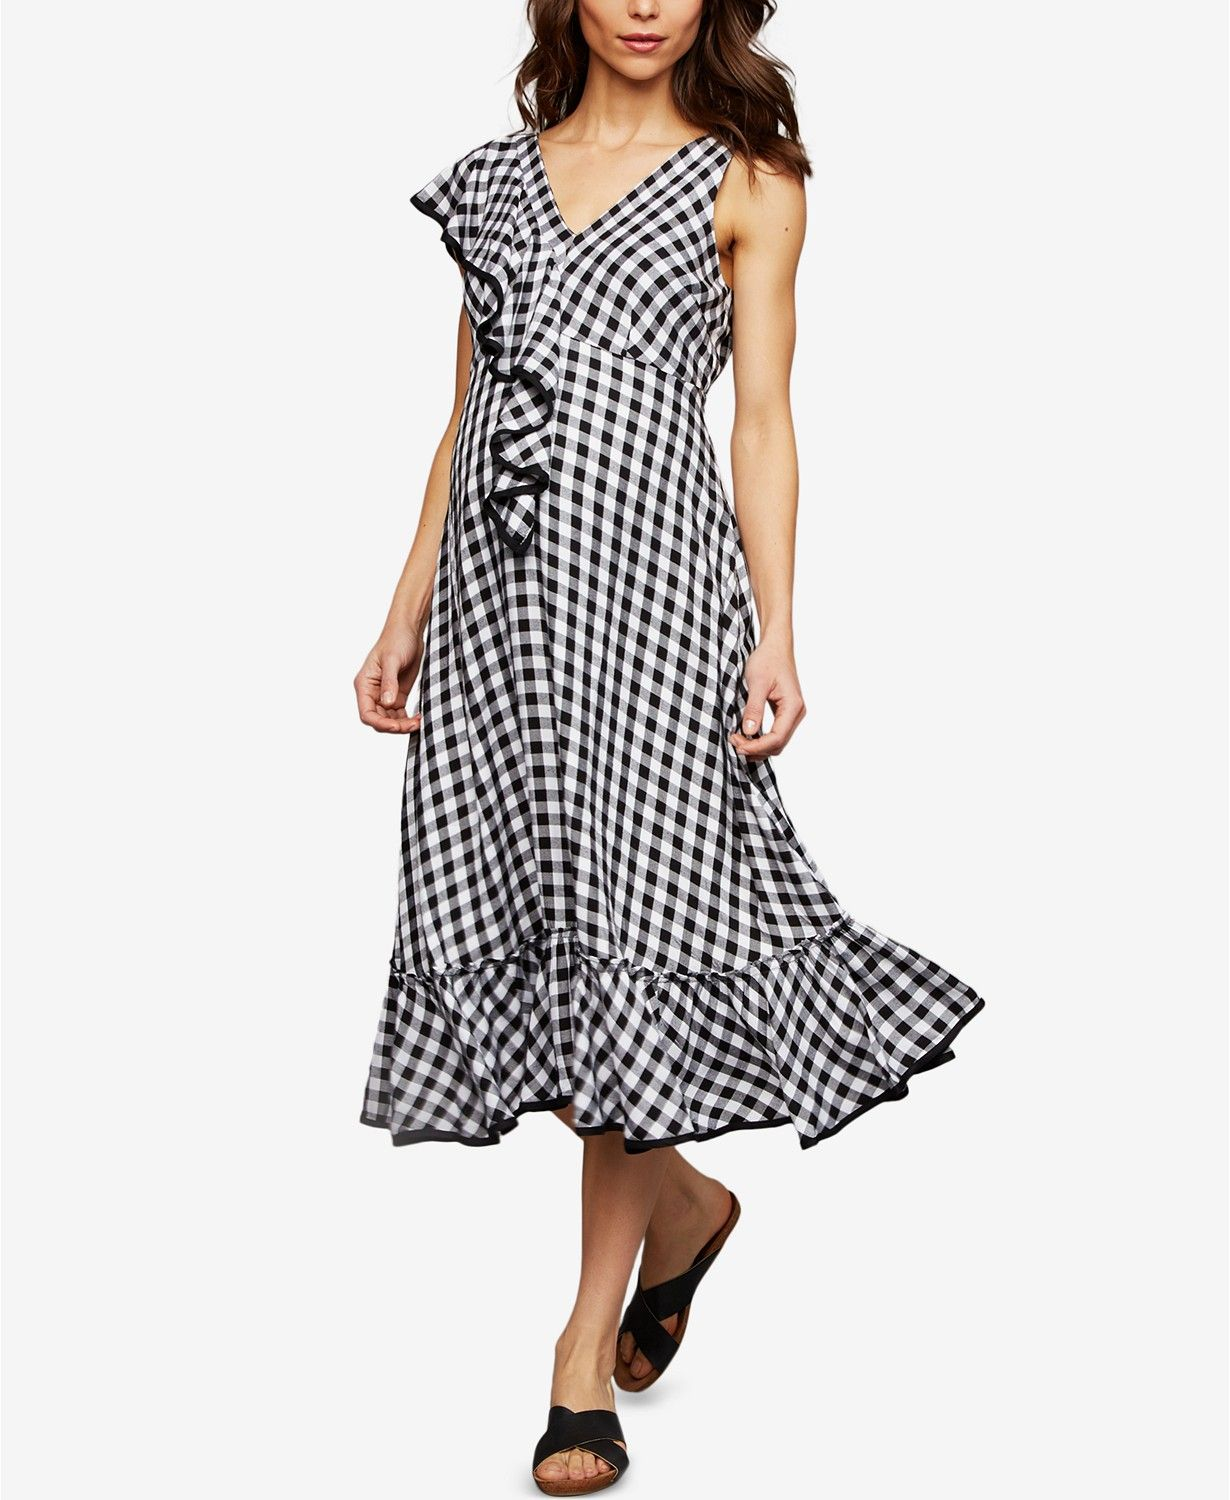 Jcpenney dresses for wedding guest  A Pea In The Pod Maternity Gingham Midi Dress  Gingham and Midi dresses